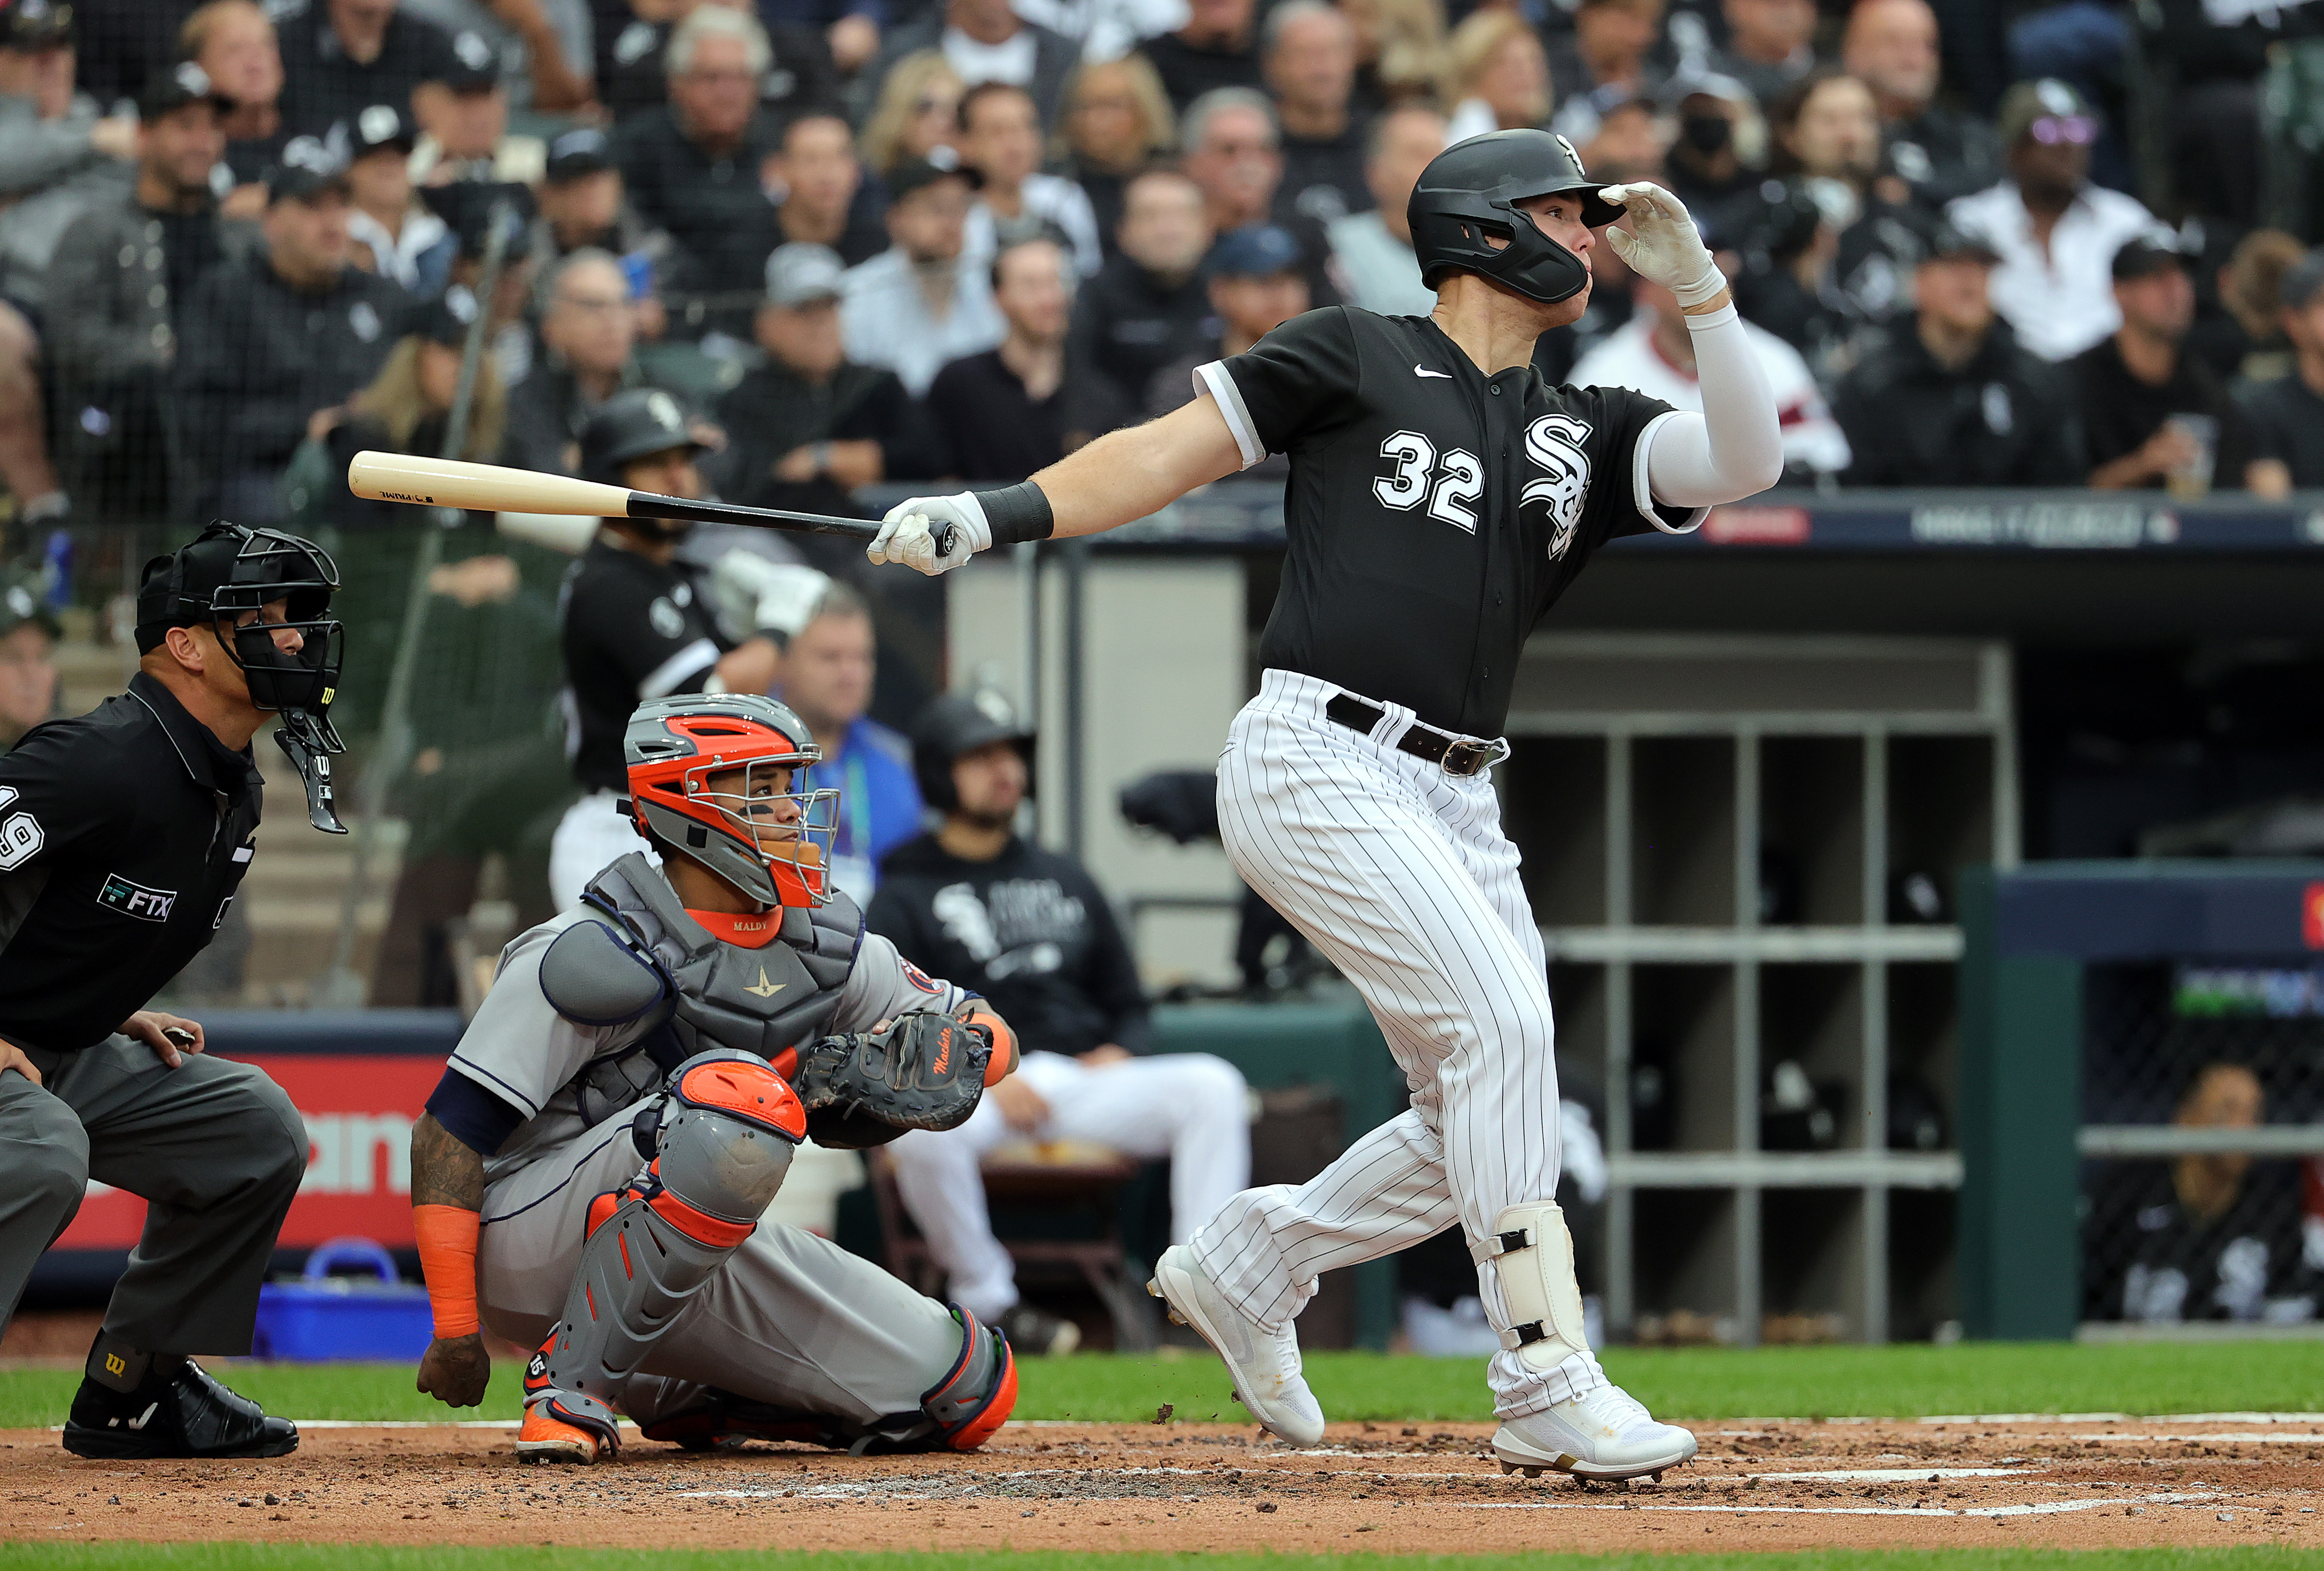 The White Sox' Gavin Sheets homers during the second inning of Game 4 of the American League Division Series at Guaranteed Rate Field.